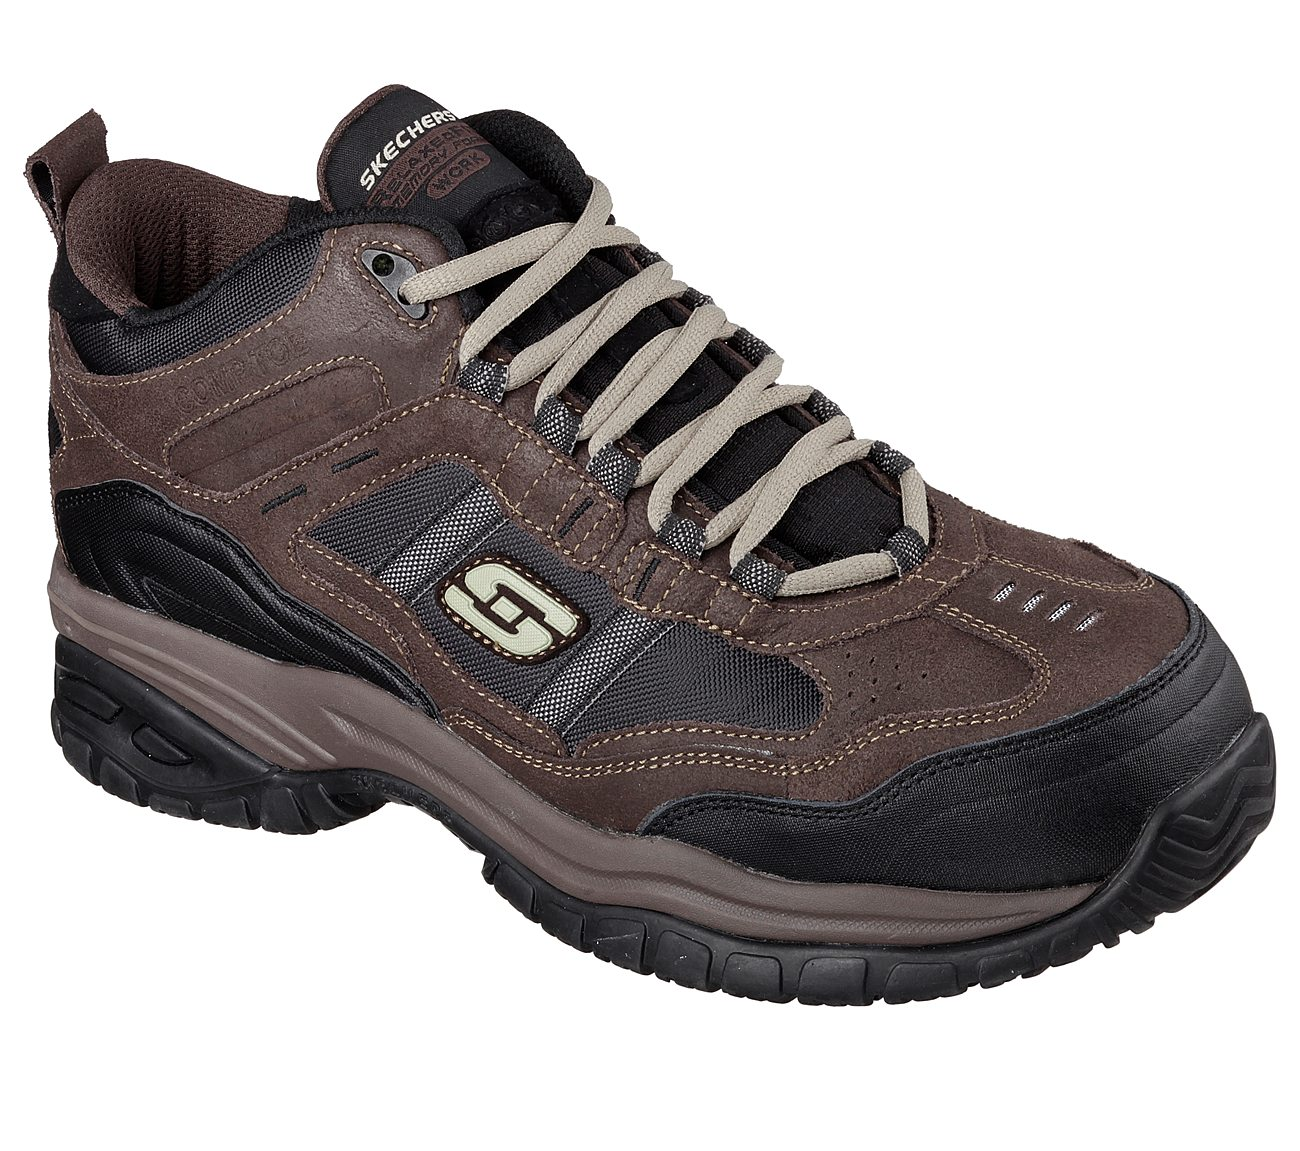 9909fec65007 Quad City Safety Boots 77027 Men s Relaxed Fit  Soft Stride Work Shoes   Skechers 77027 Relaxed ...